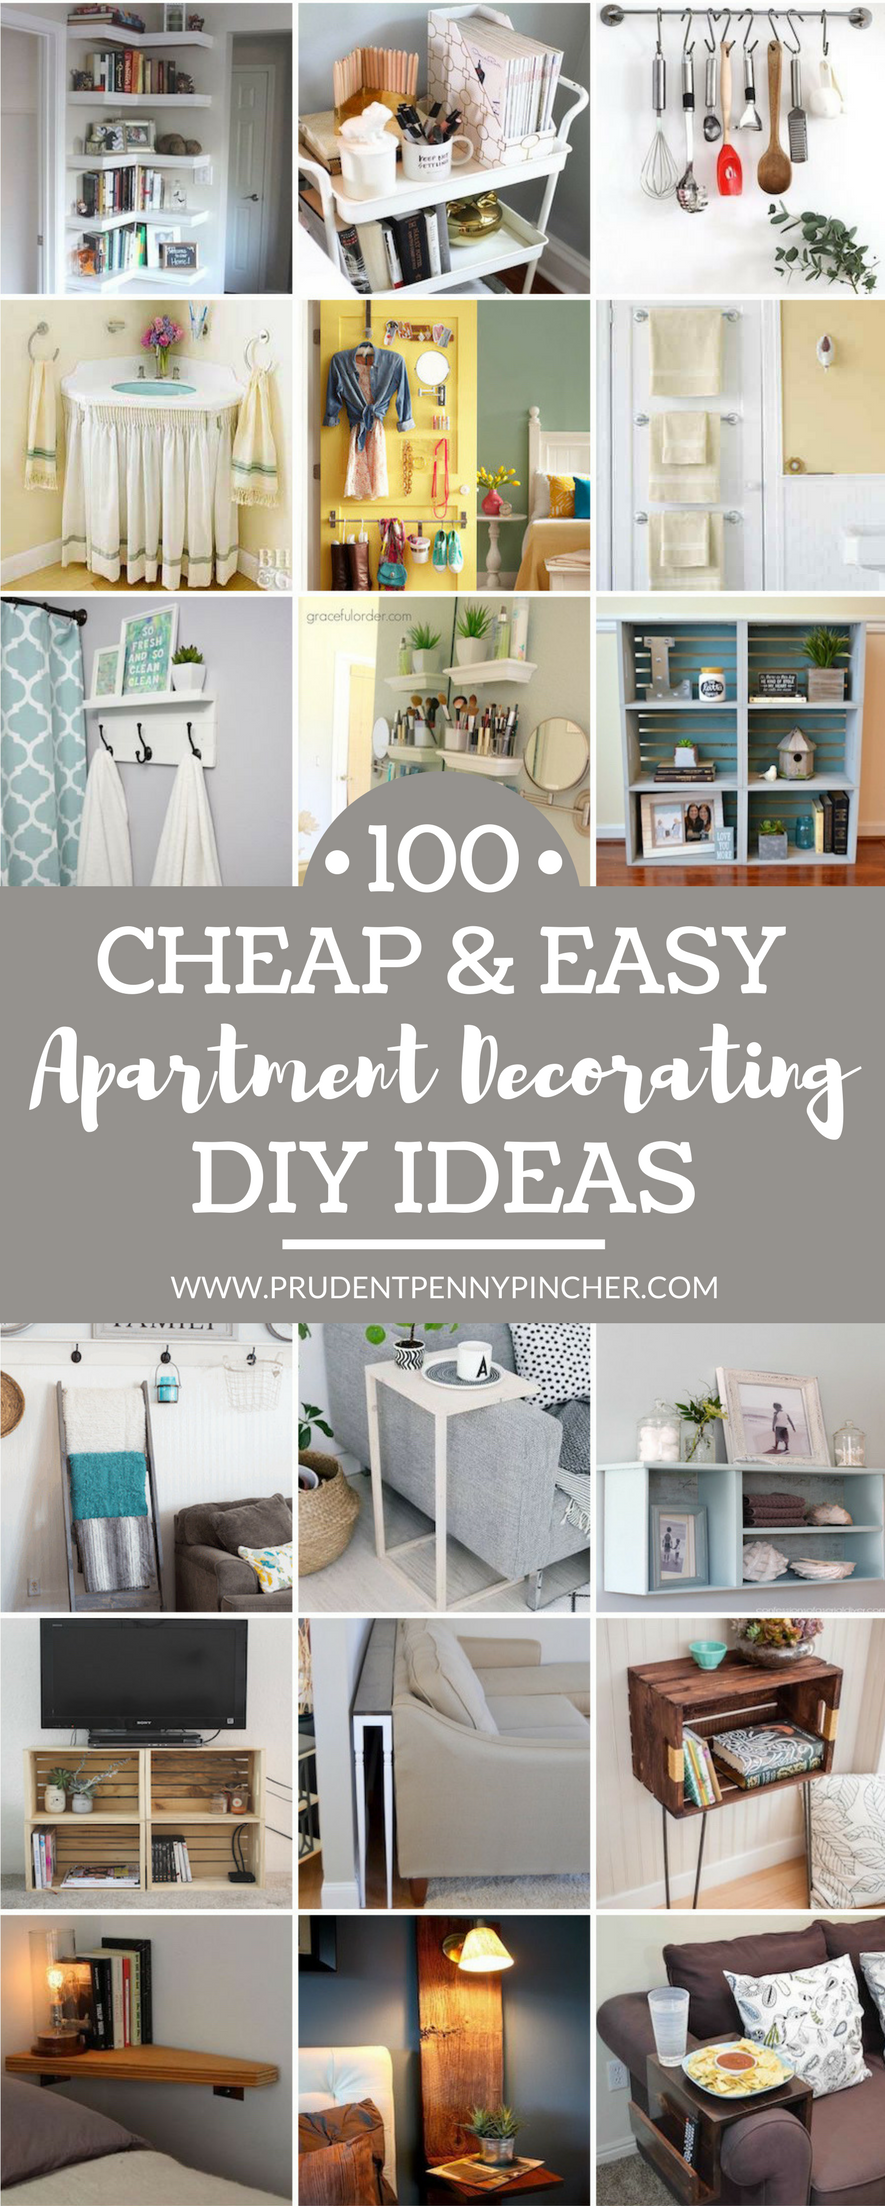 100 Diy Apartment Decorating Ideas Diy Apartment Decor Simple Apartment Decor Diy Apartments